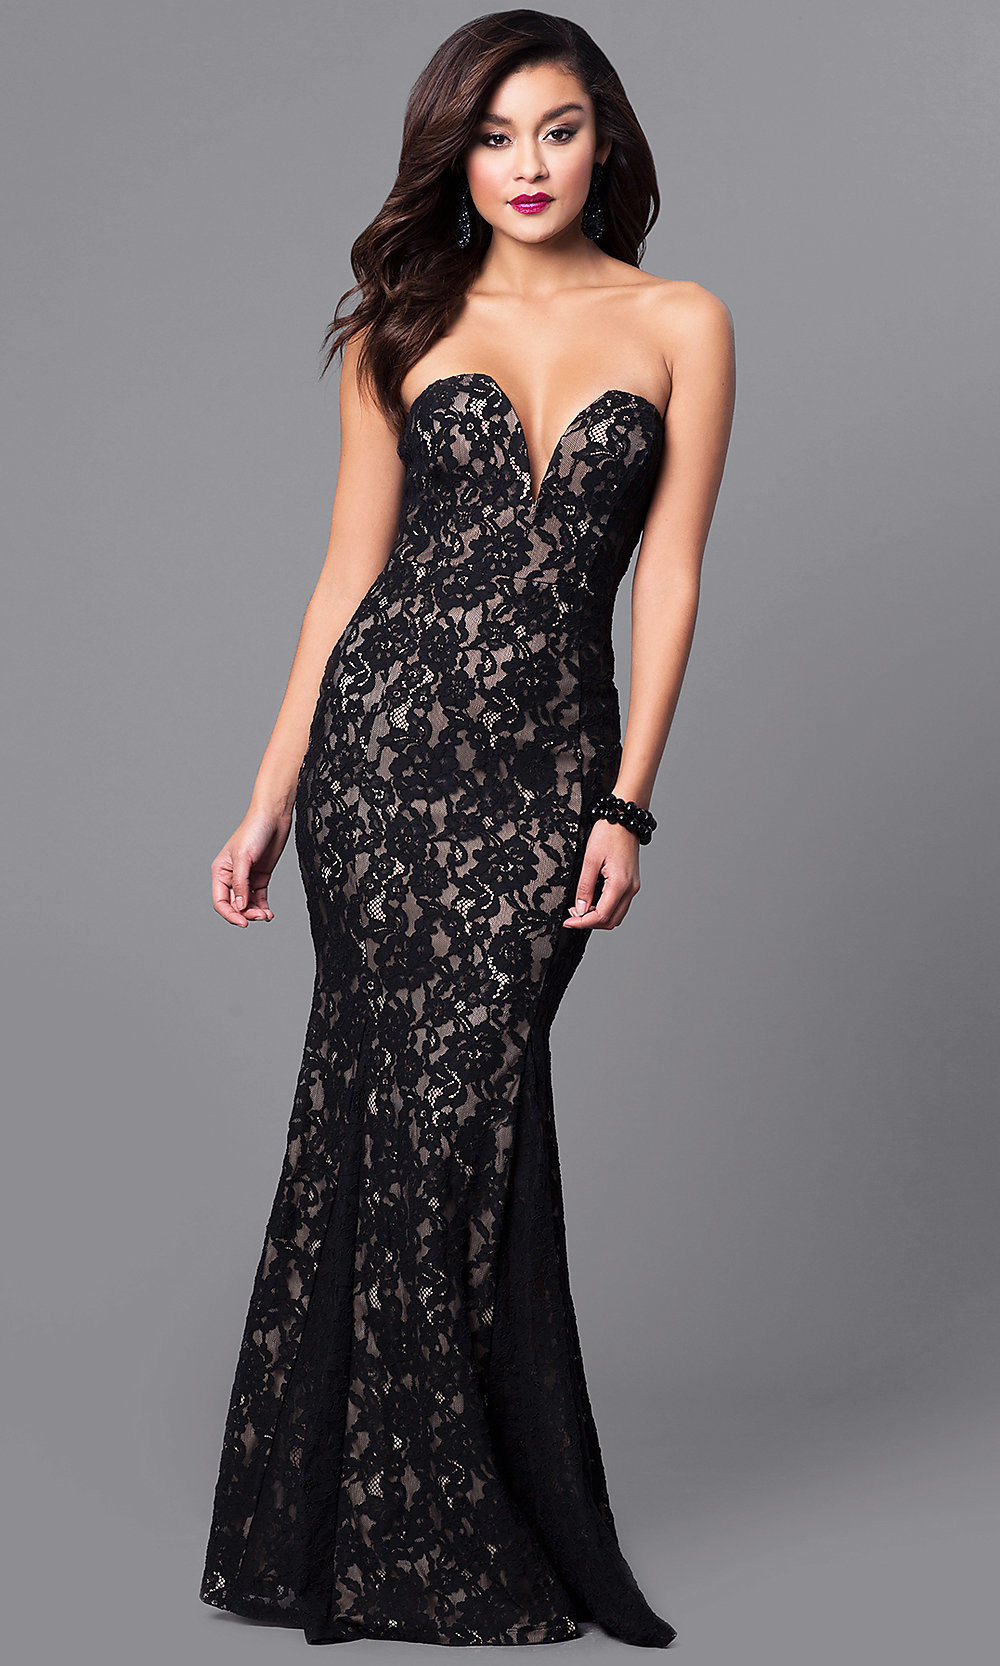 Strapless Sweetheart Black Lace Long Prom Dress